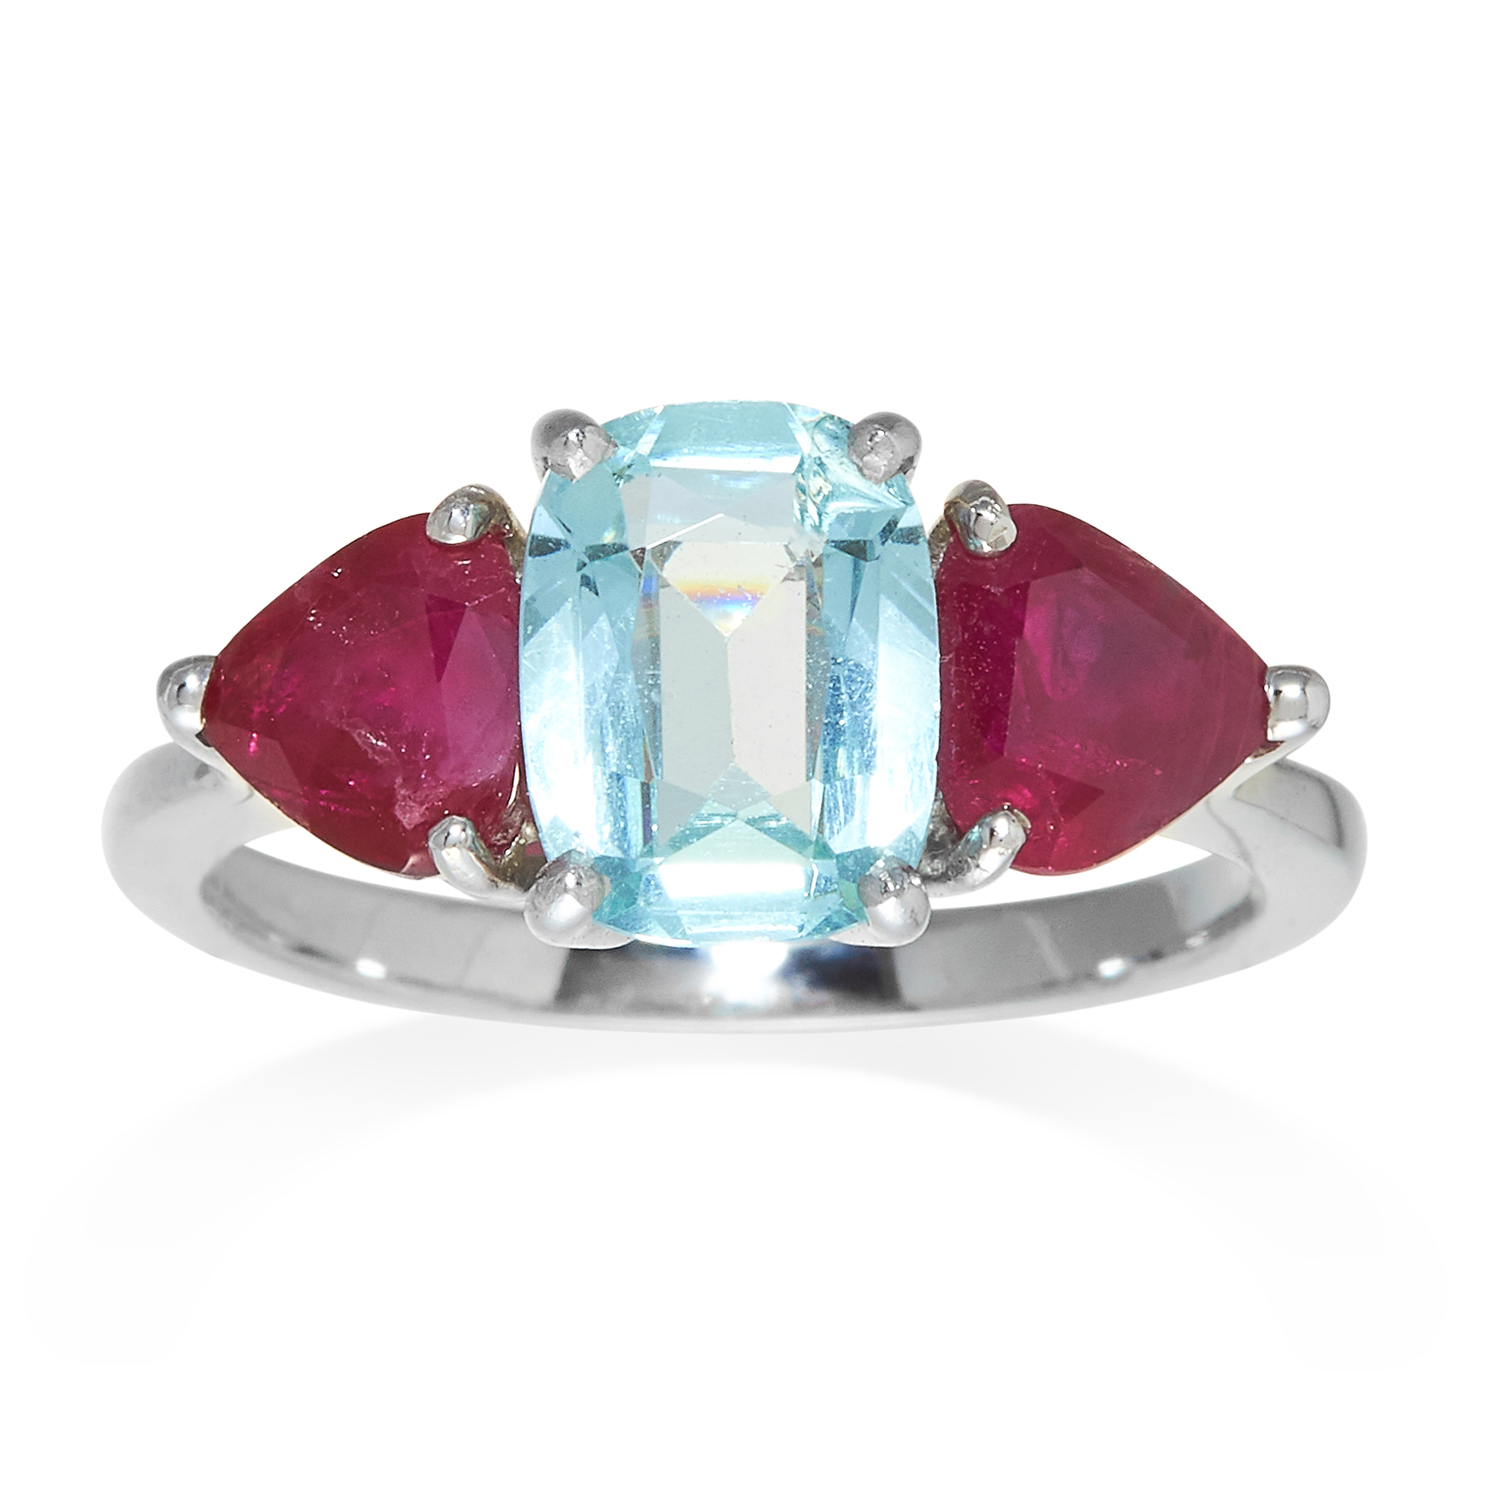 Los 319 - AN AQUAMARINE AND RUBY RING in white gold, the central cushion cut aquamarine, flanked by two